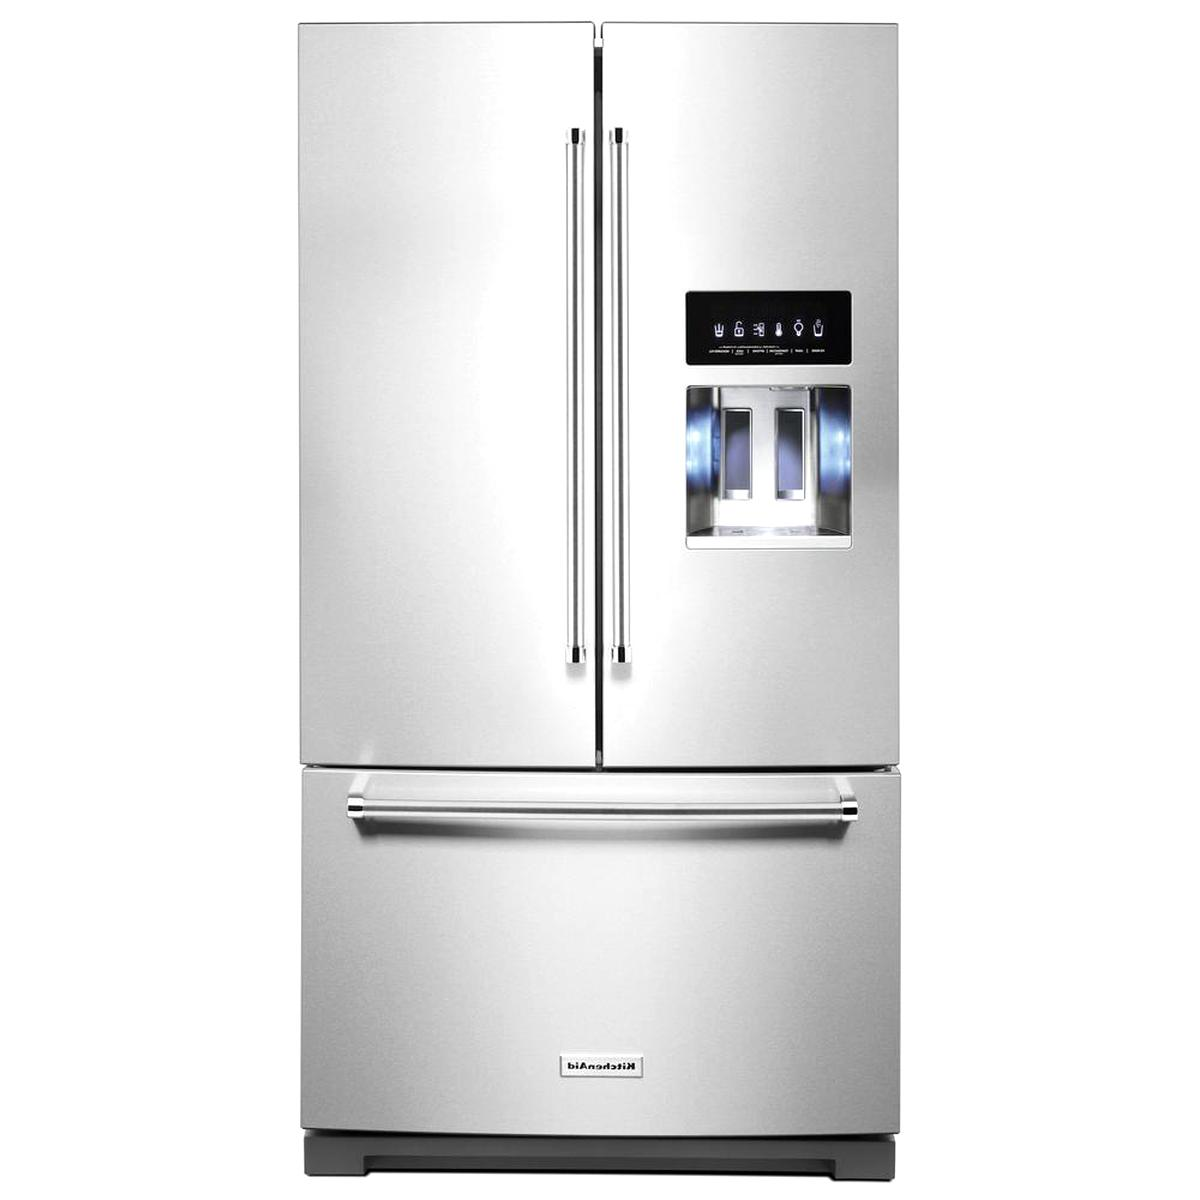 Kitchenaid Refrigerator for sale | Only 4 left at -60%